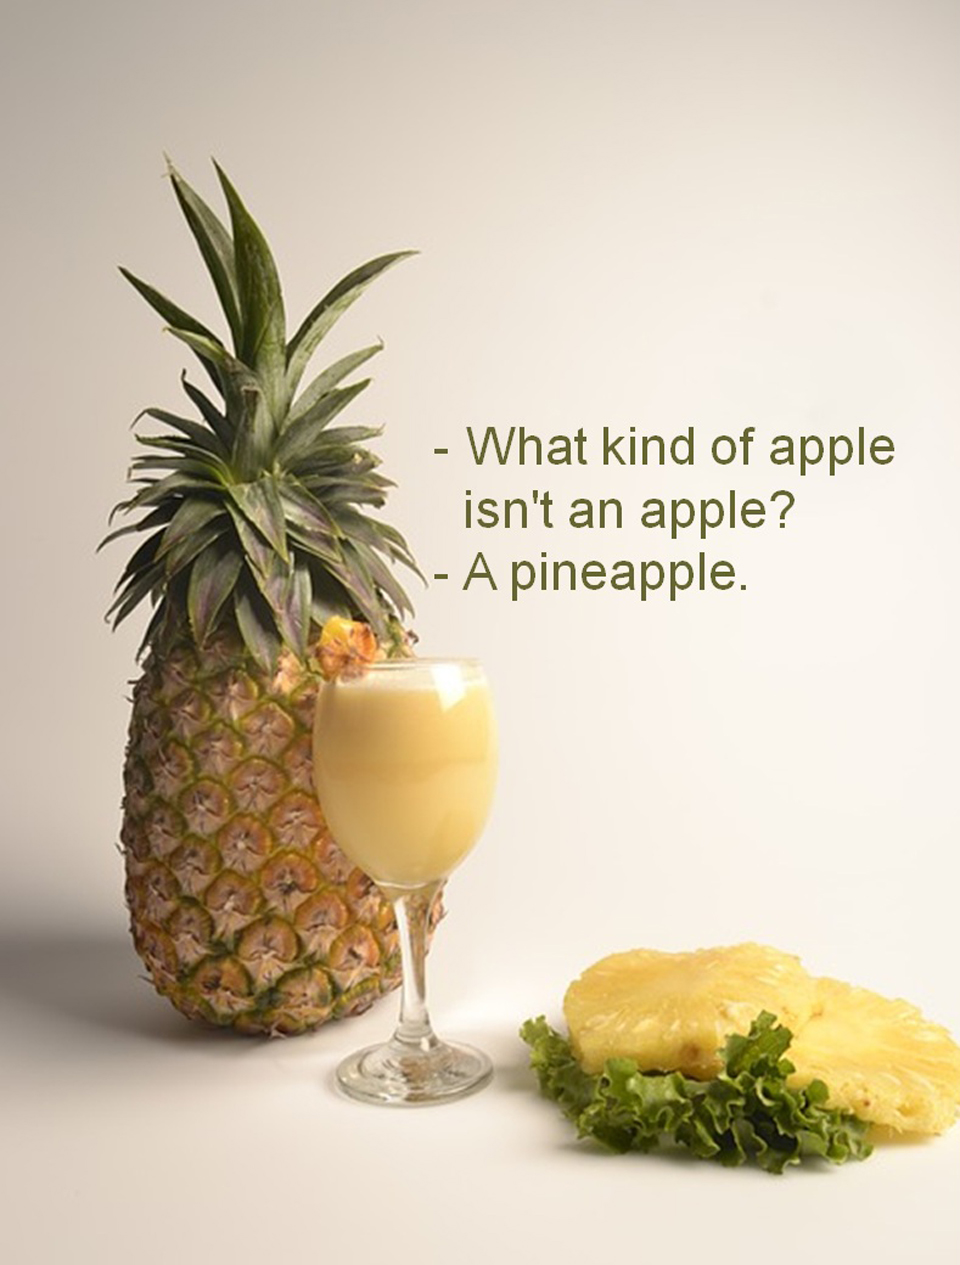 What kind of apple isn't an apple?